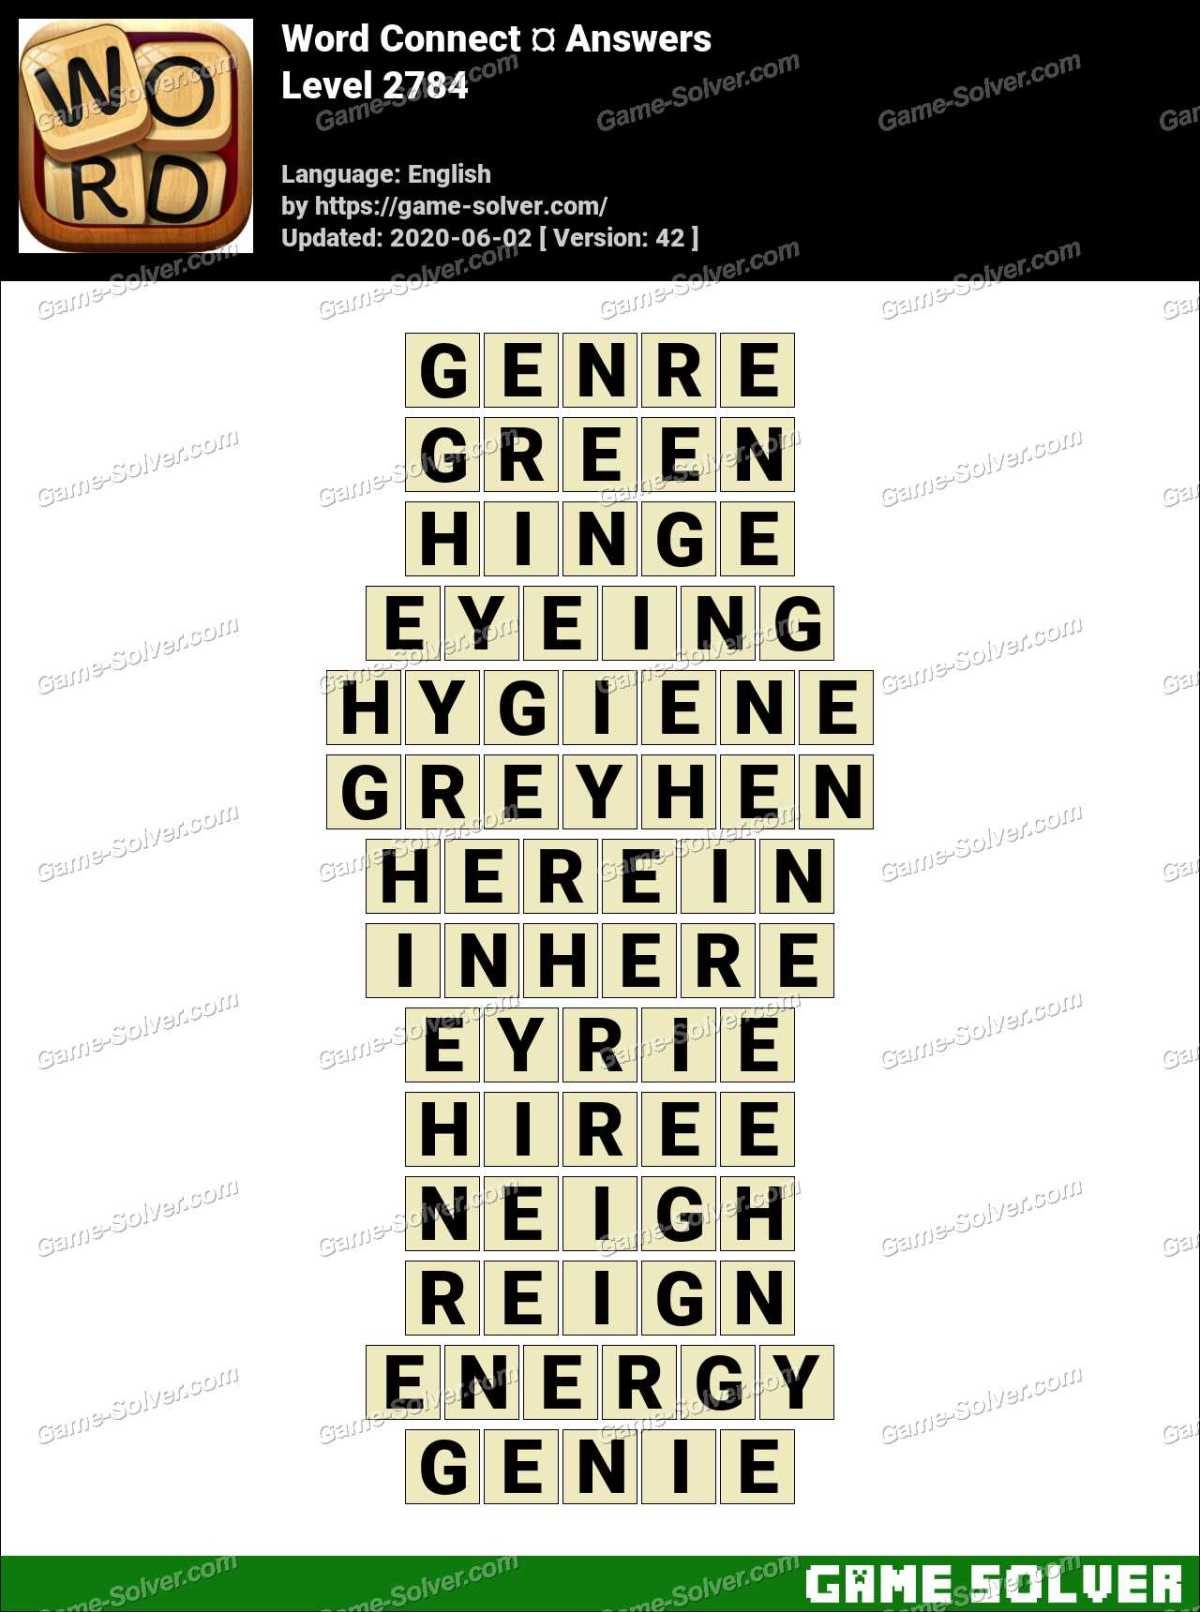 Word Connect Level 2784 Answers